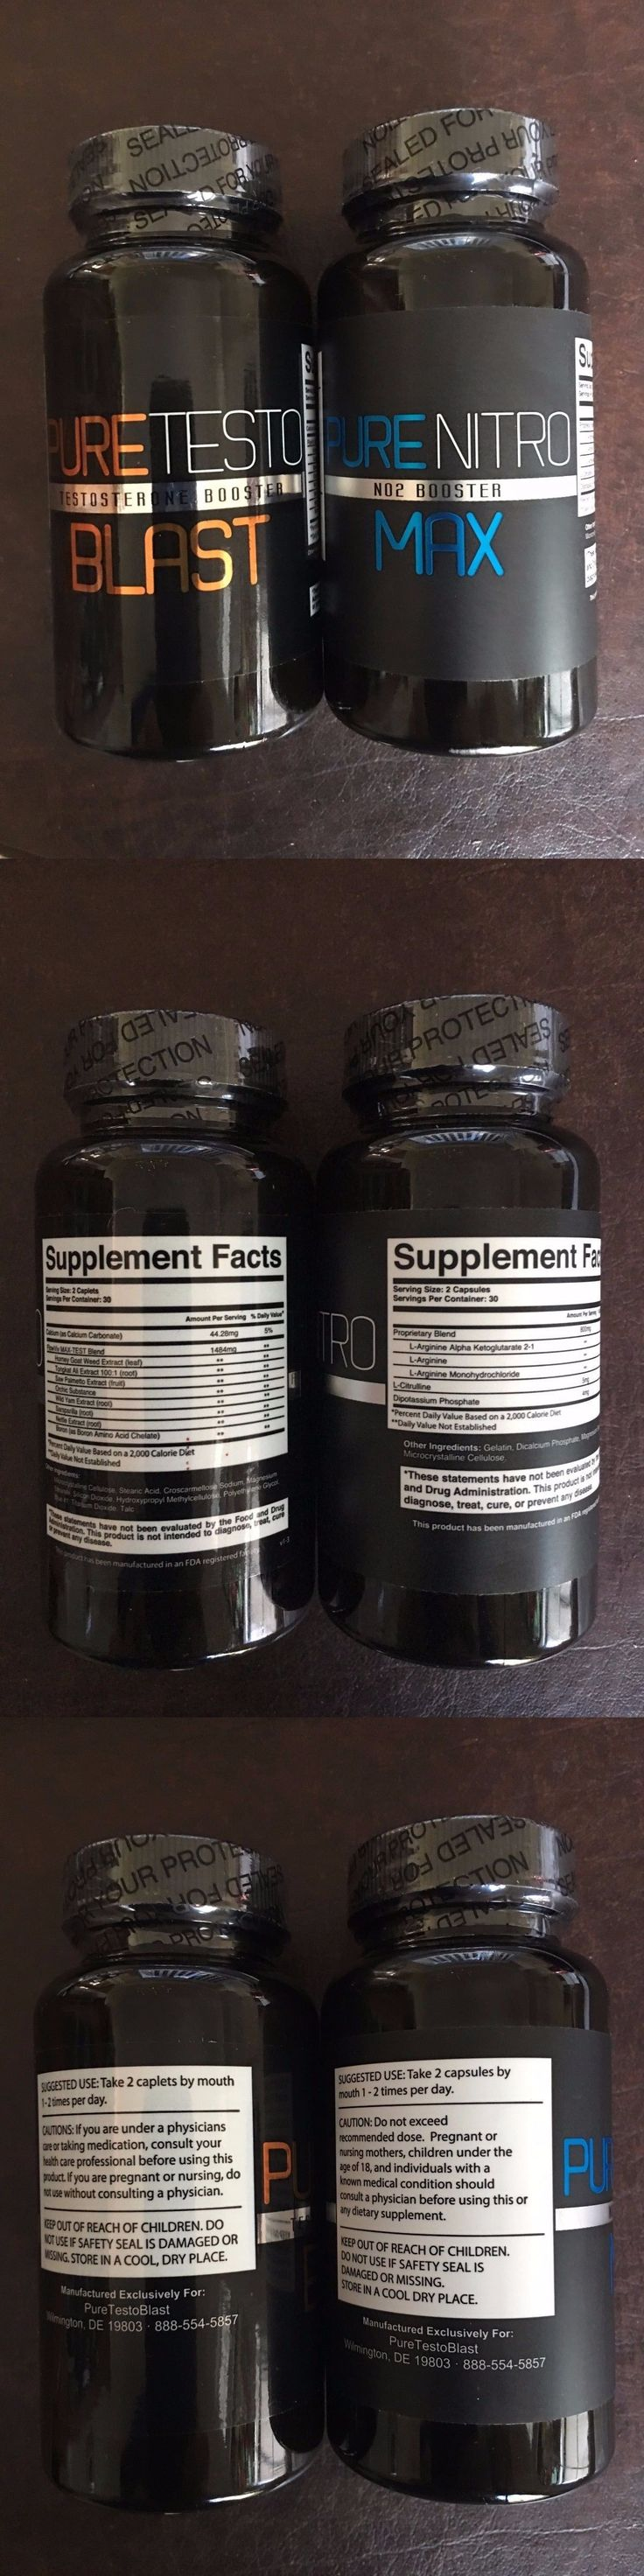 Sports Vitamins and Minerals: Pure Nitro Max No2 Booster And Testo Blast Testosterone Booster - Exp 03 2020 -New -> BUY IT NOW ONLY: $64.75 on eBay!